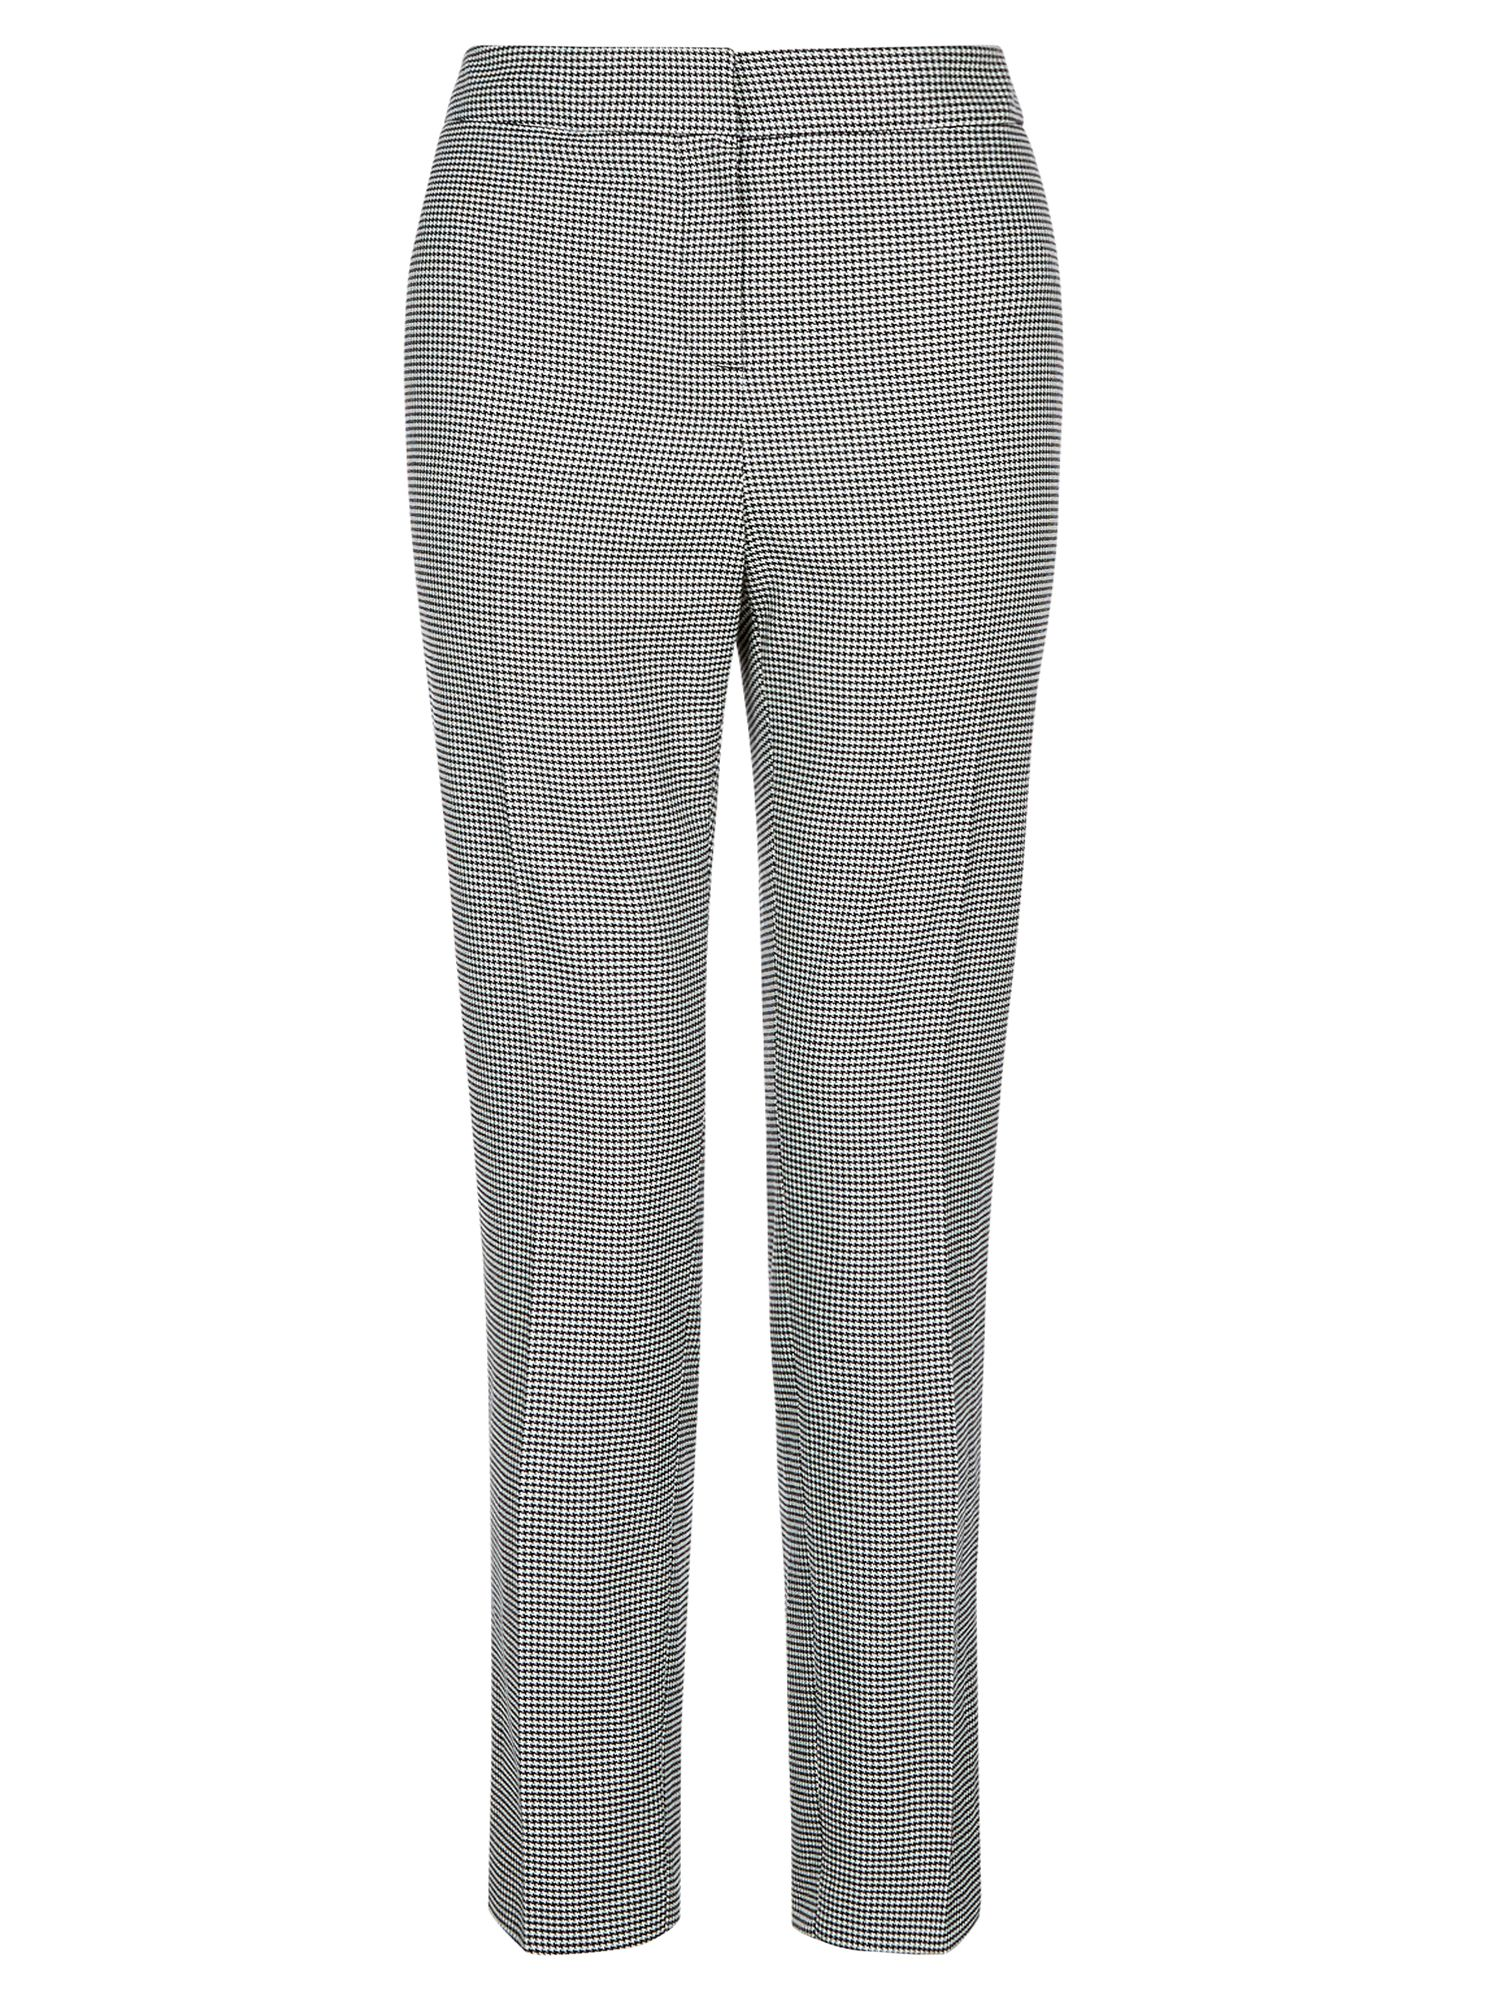 Hobbs Sian Trouser, Multi-Coloured